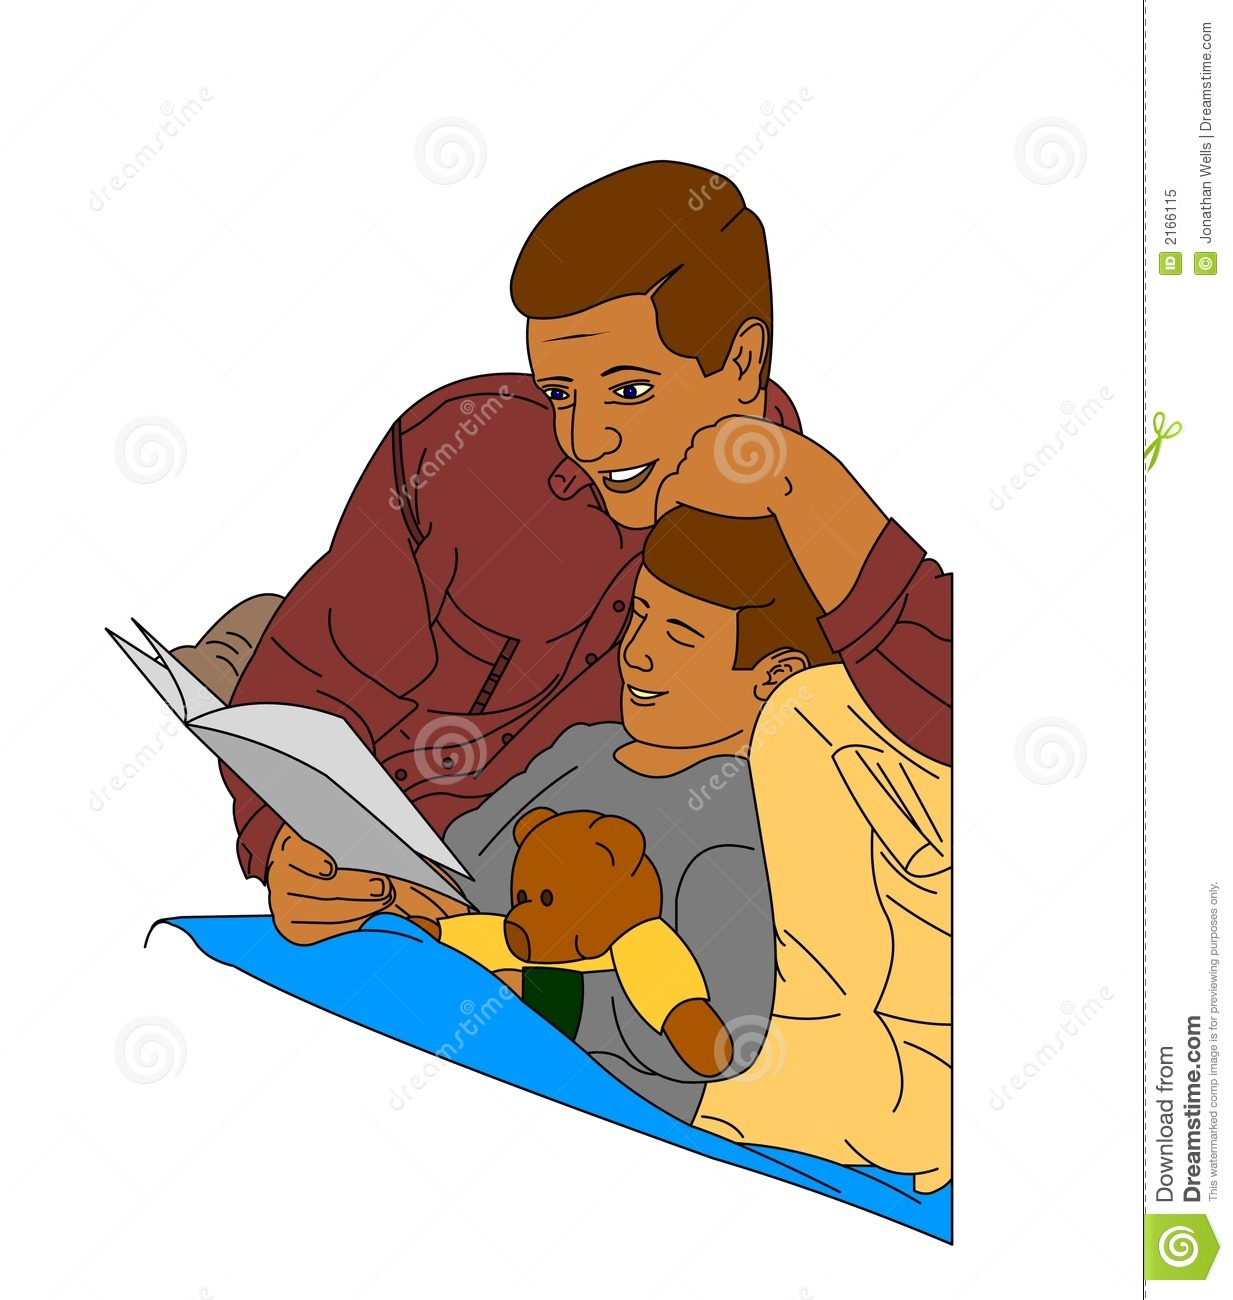 dad narrative Read lucy's story children's stories when i lived with my dad i felt like nothing  i felt like he didn't care about me, all he cared about was the drugs.